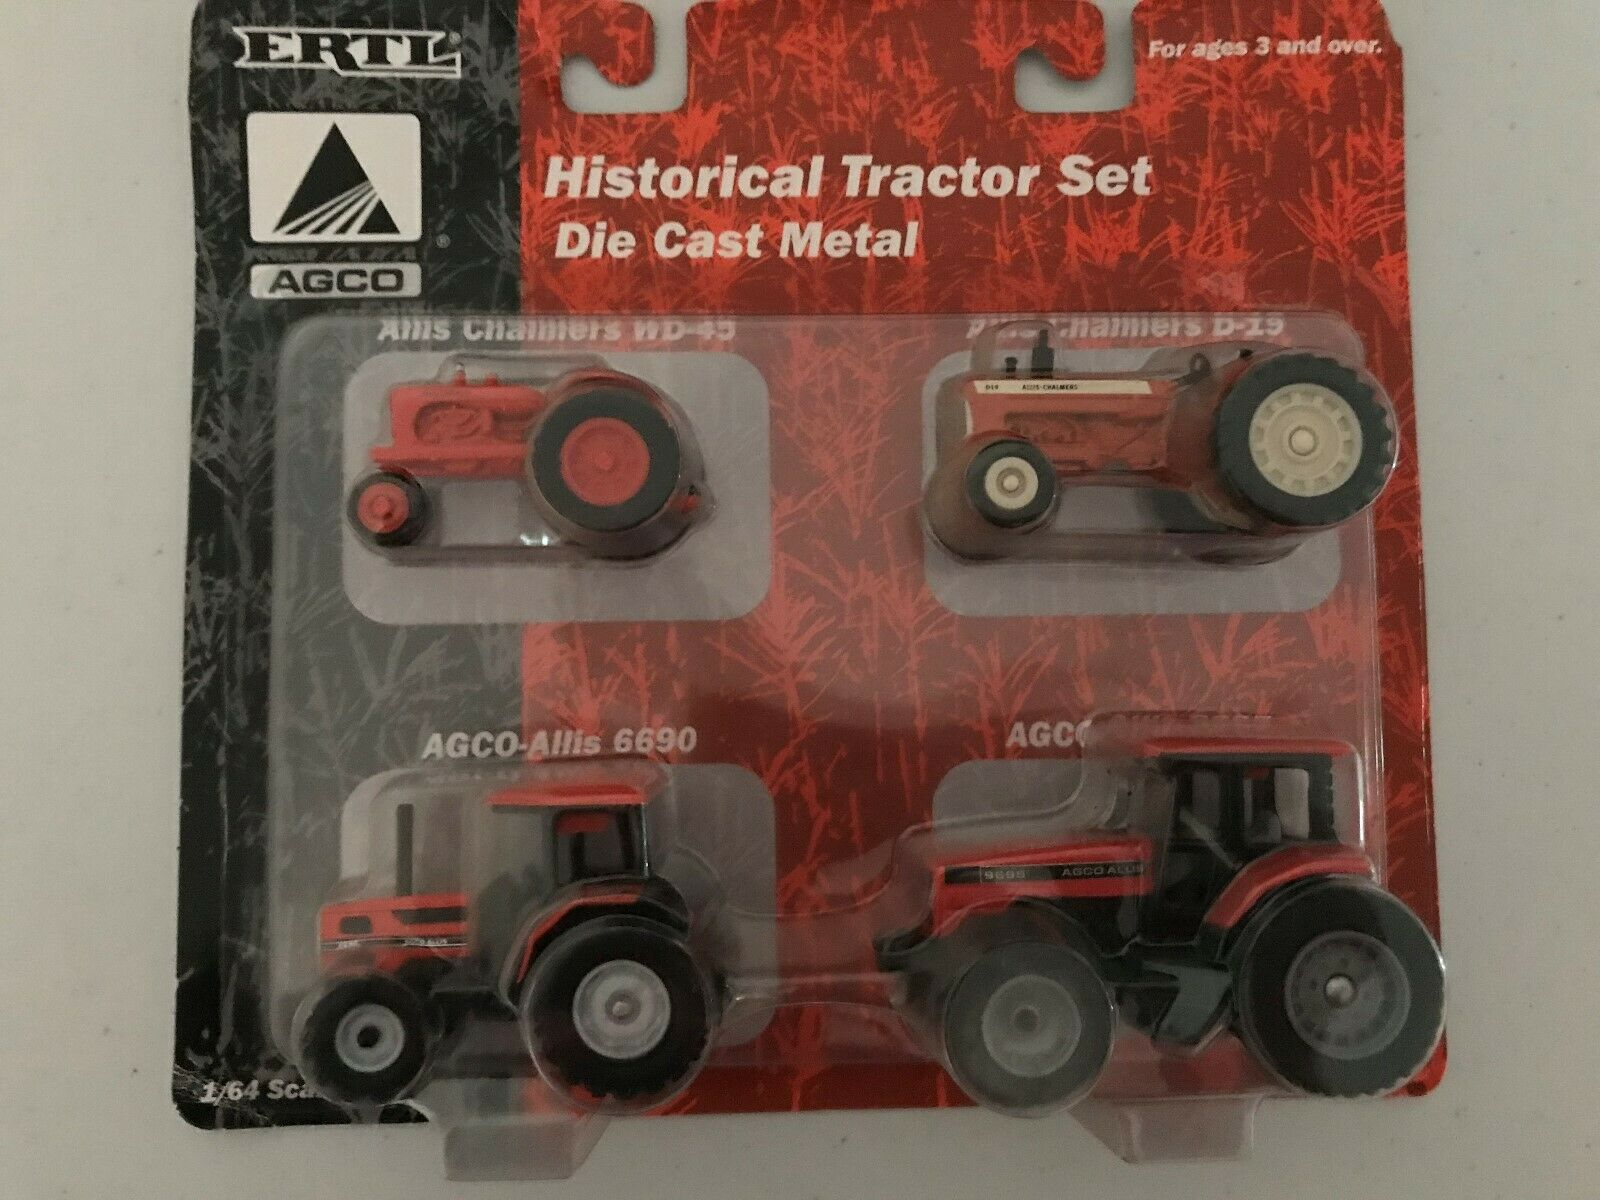 1/64th AGCo Historical Tractor Set #13187